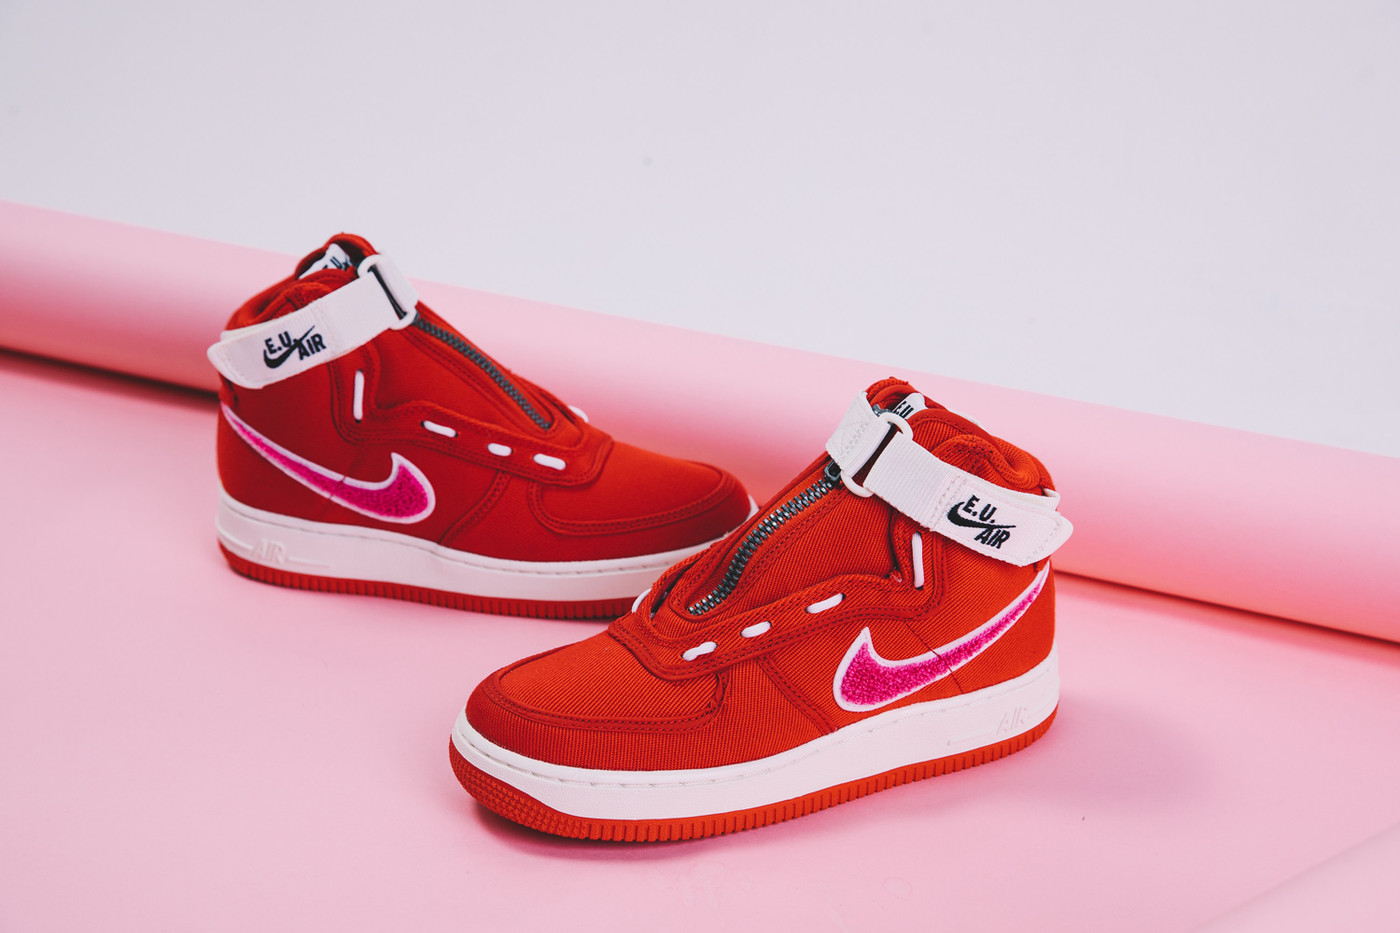 hot sale online 87d3d 1047c Spana in Emotionally Unavailable x Nike Air Force 1 High